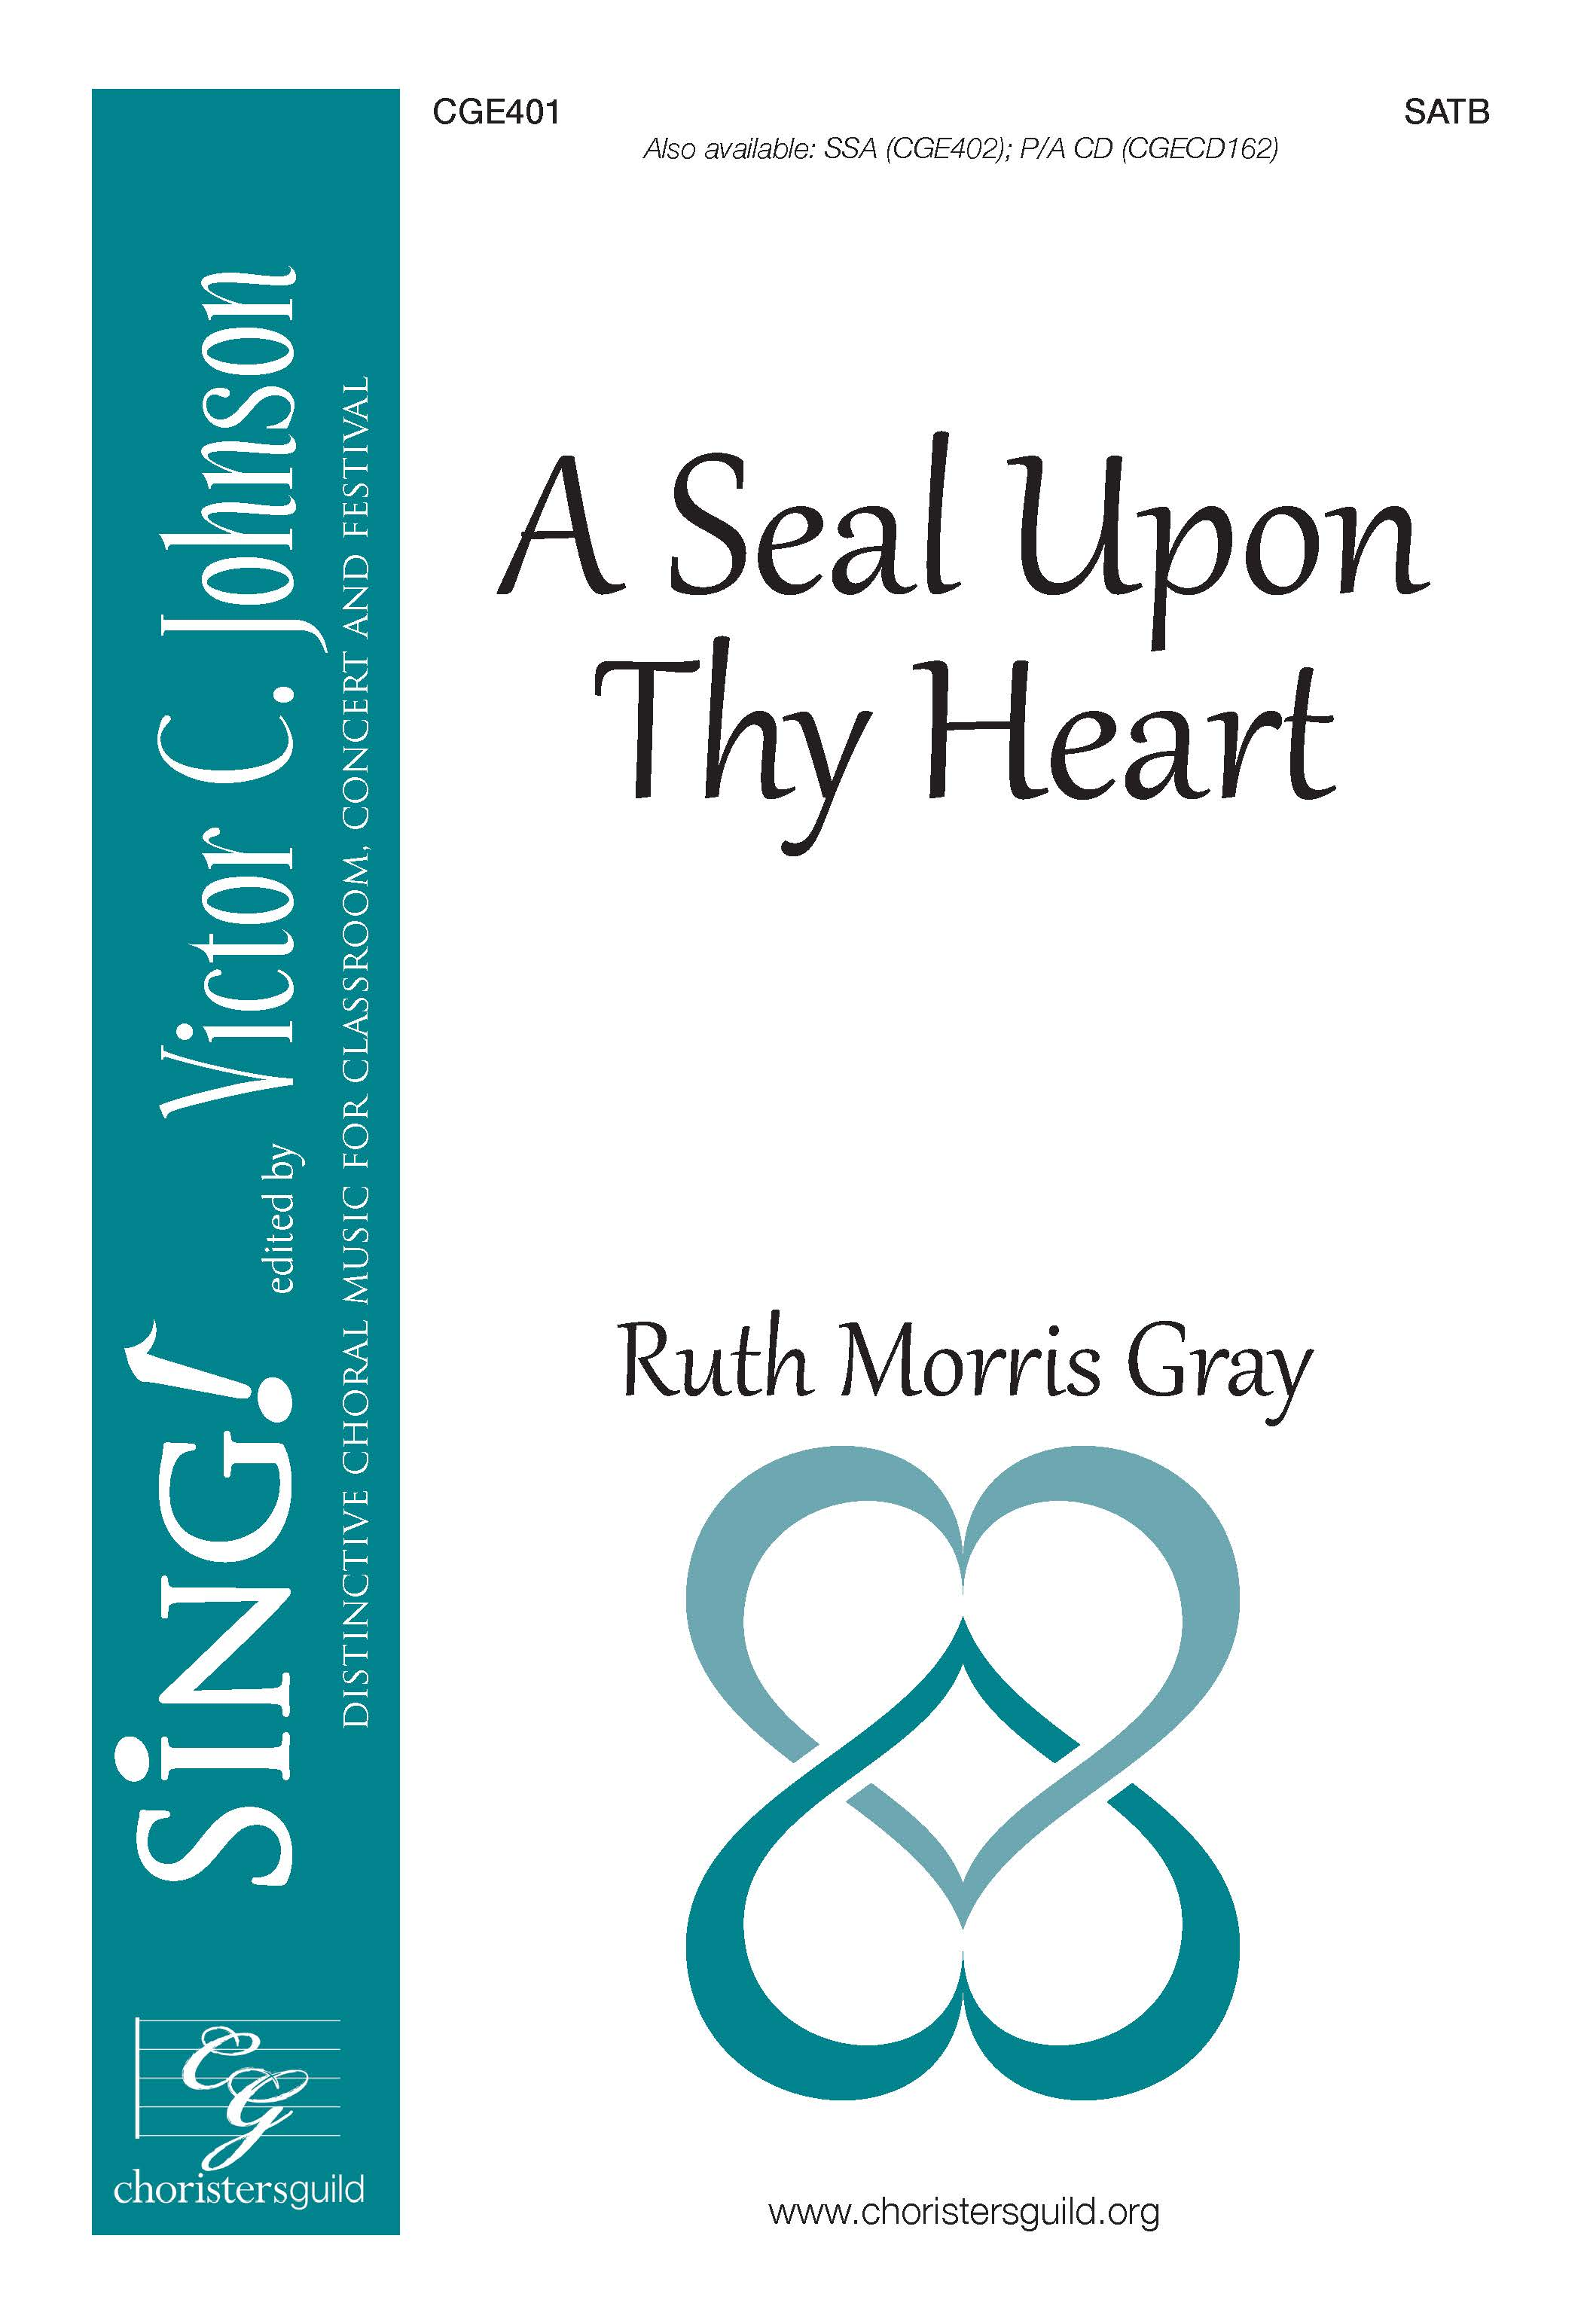 A Seal Upon Thy Heart - SATB